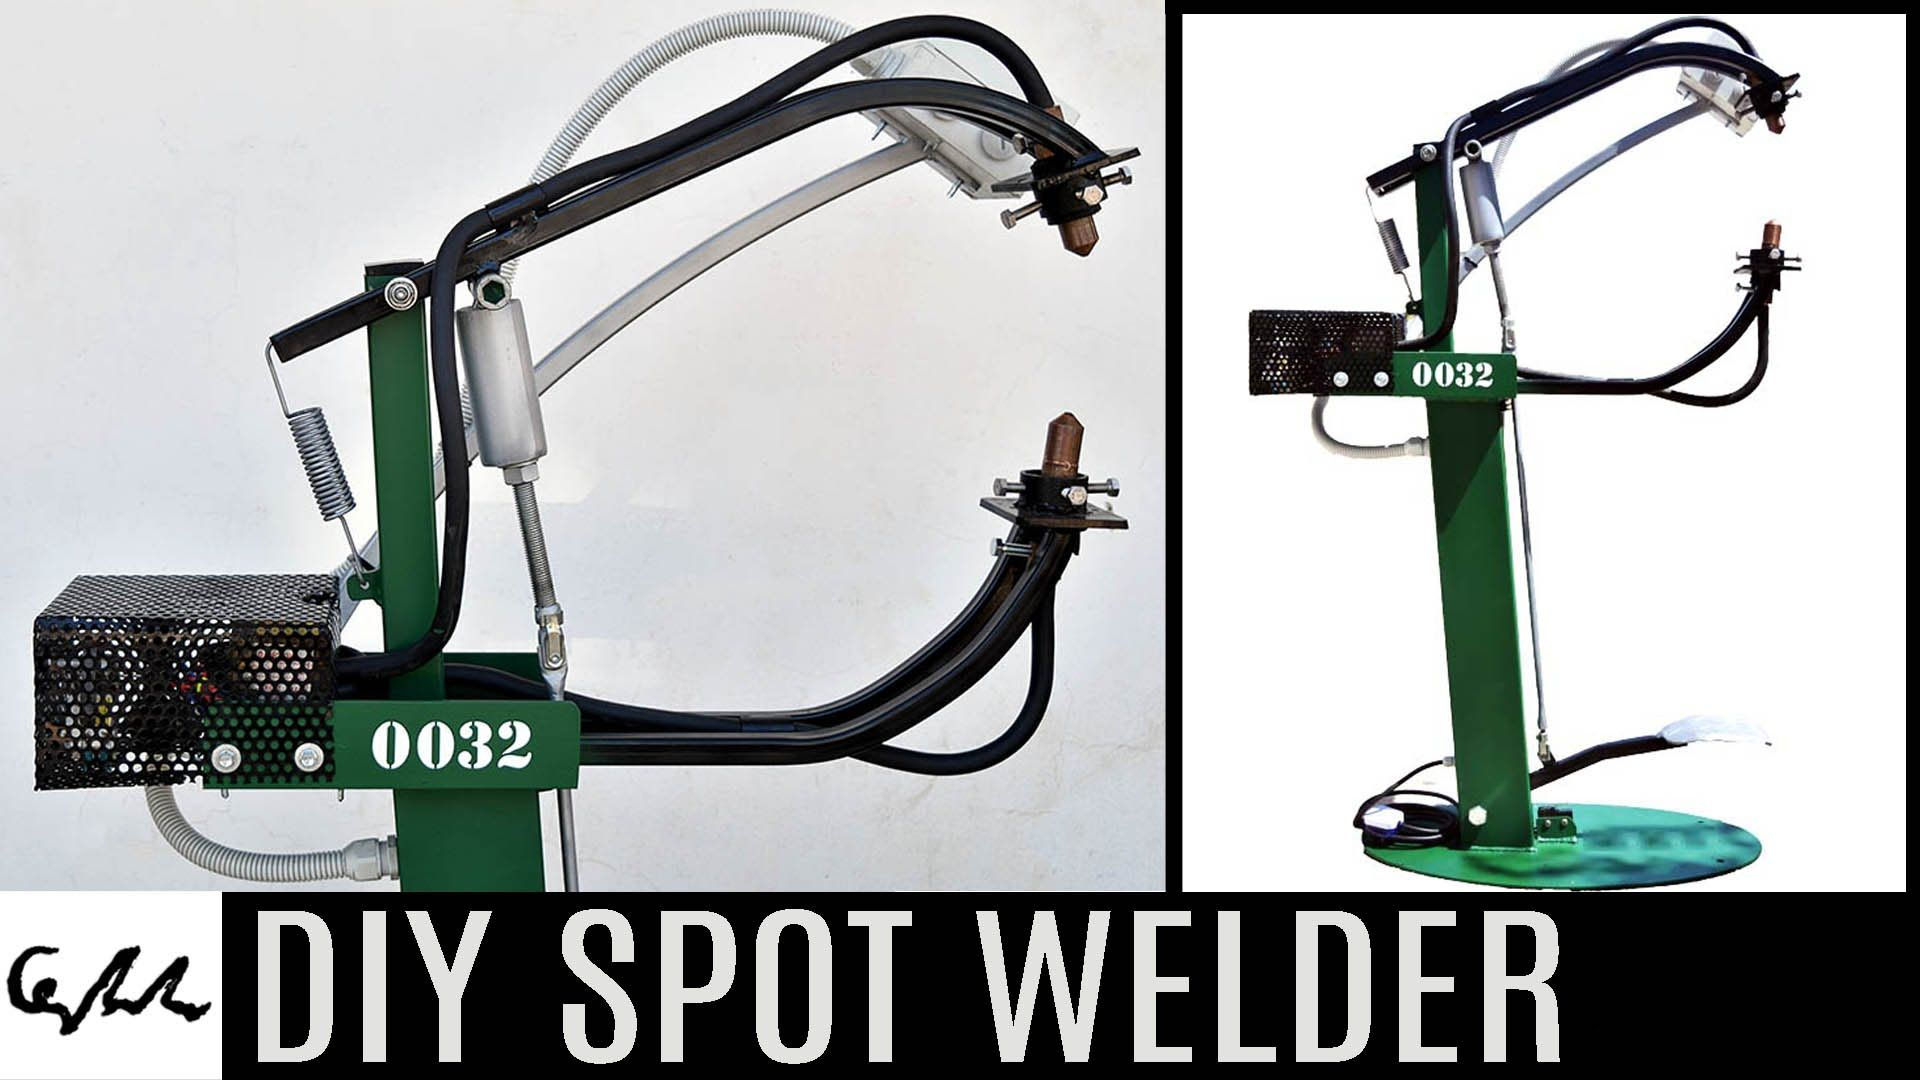 The Particular Project Was Planned Not To Make A Portable Spot Welding Machine Diagram Welder But One With Stable Basis Therefore We Made Metallic Frame